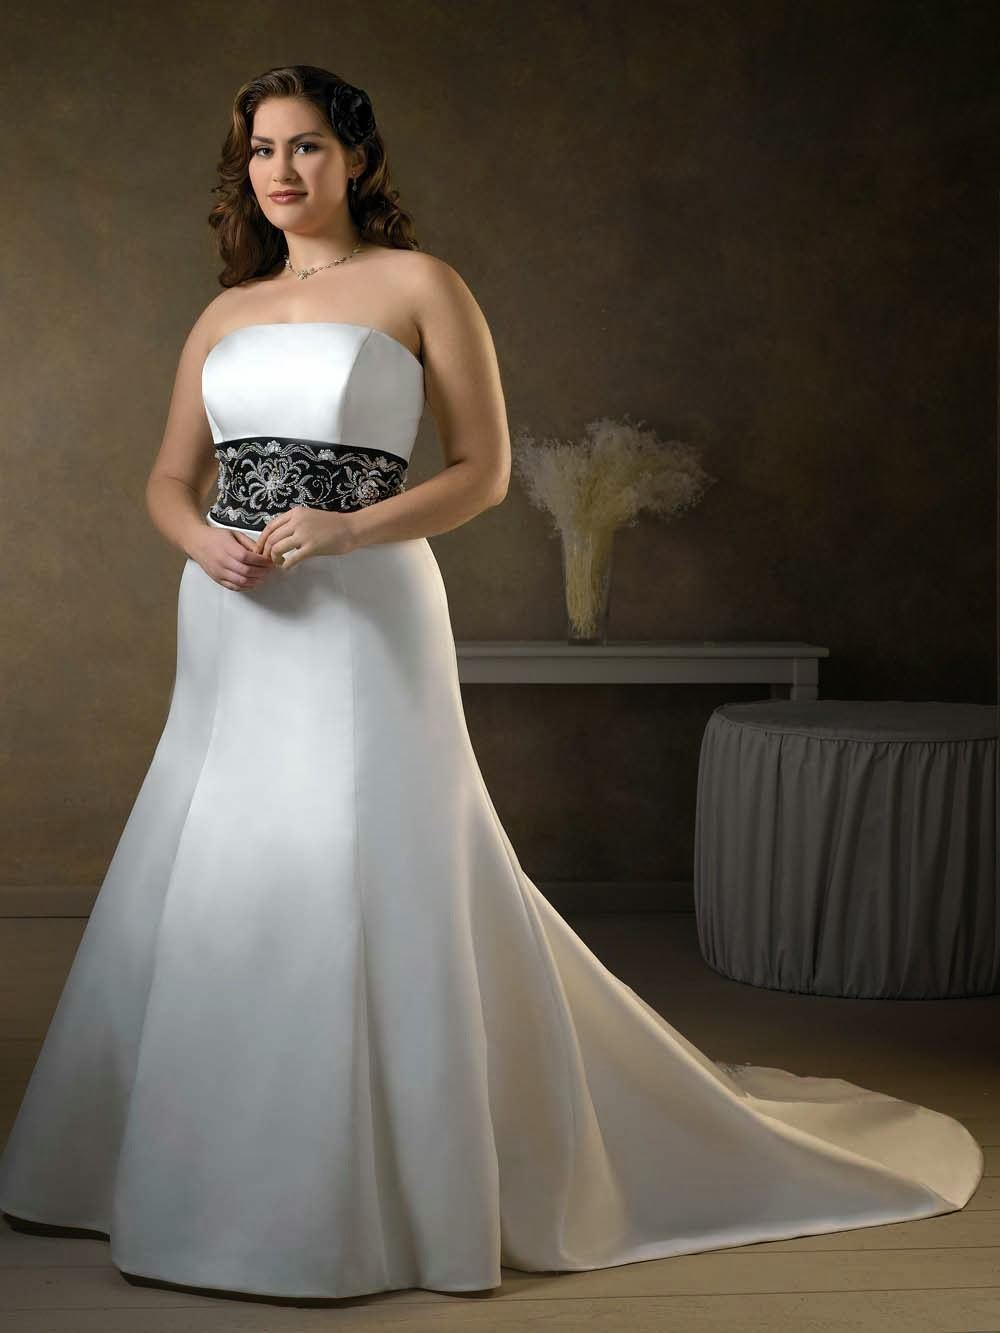 Used wedding gown get high quality plus size dress with for Wedding dress plus size cheap